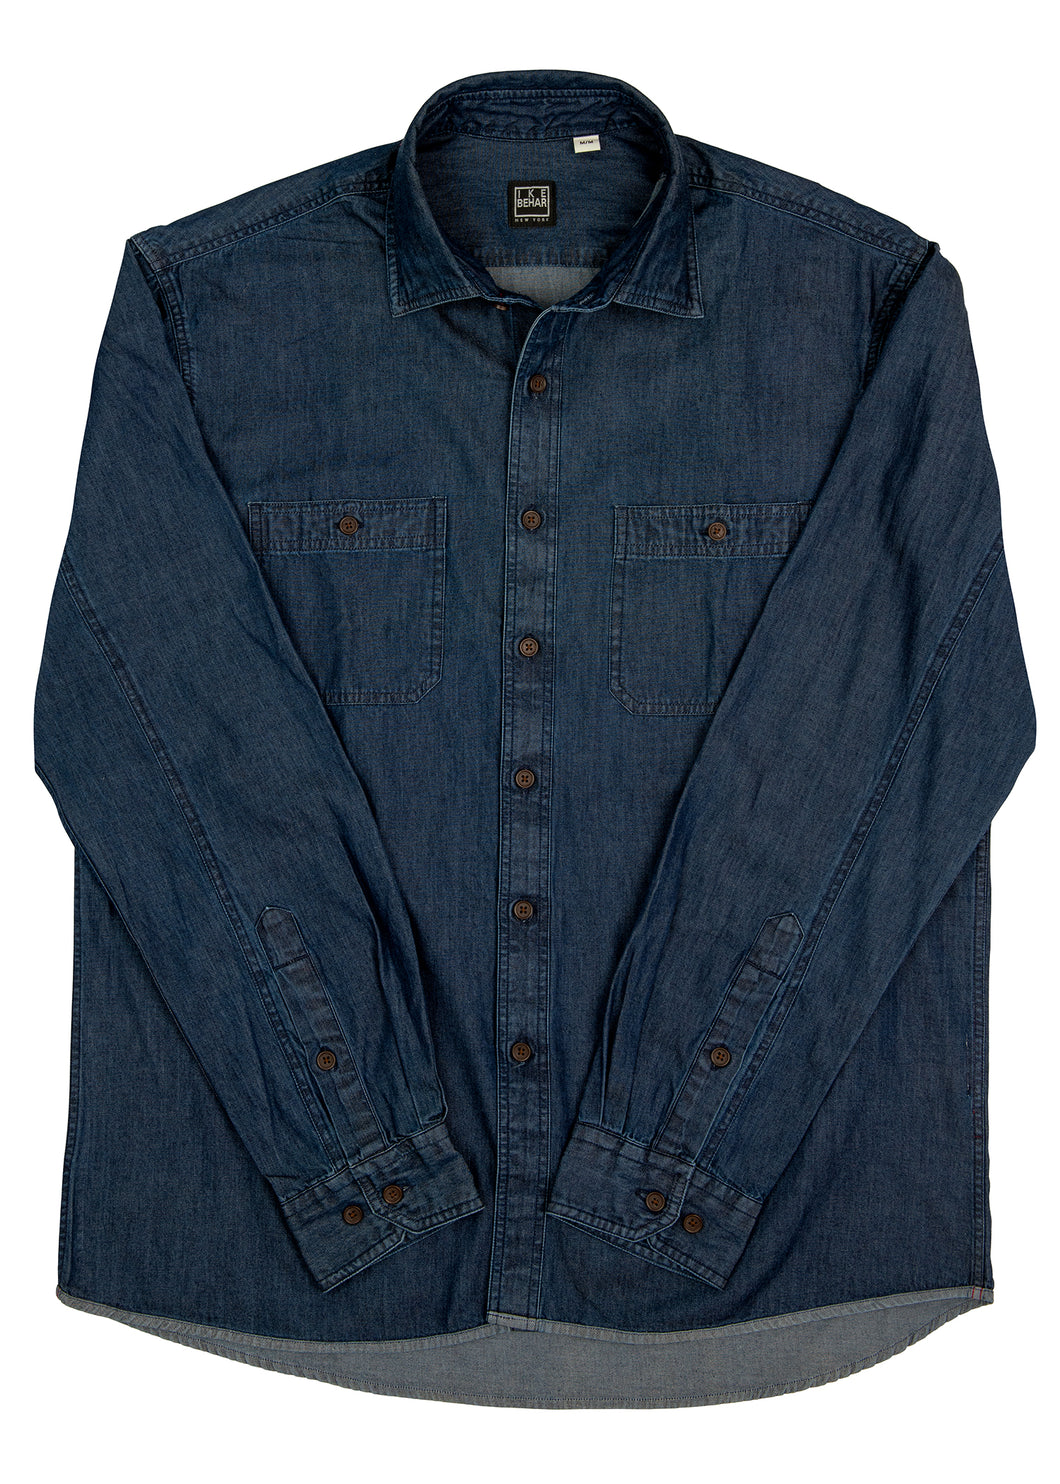 Washed Indigo Denim Sport Shirt